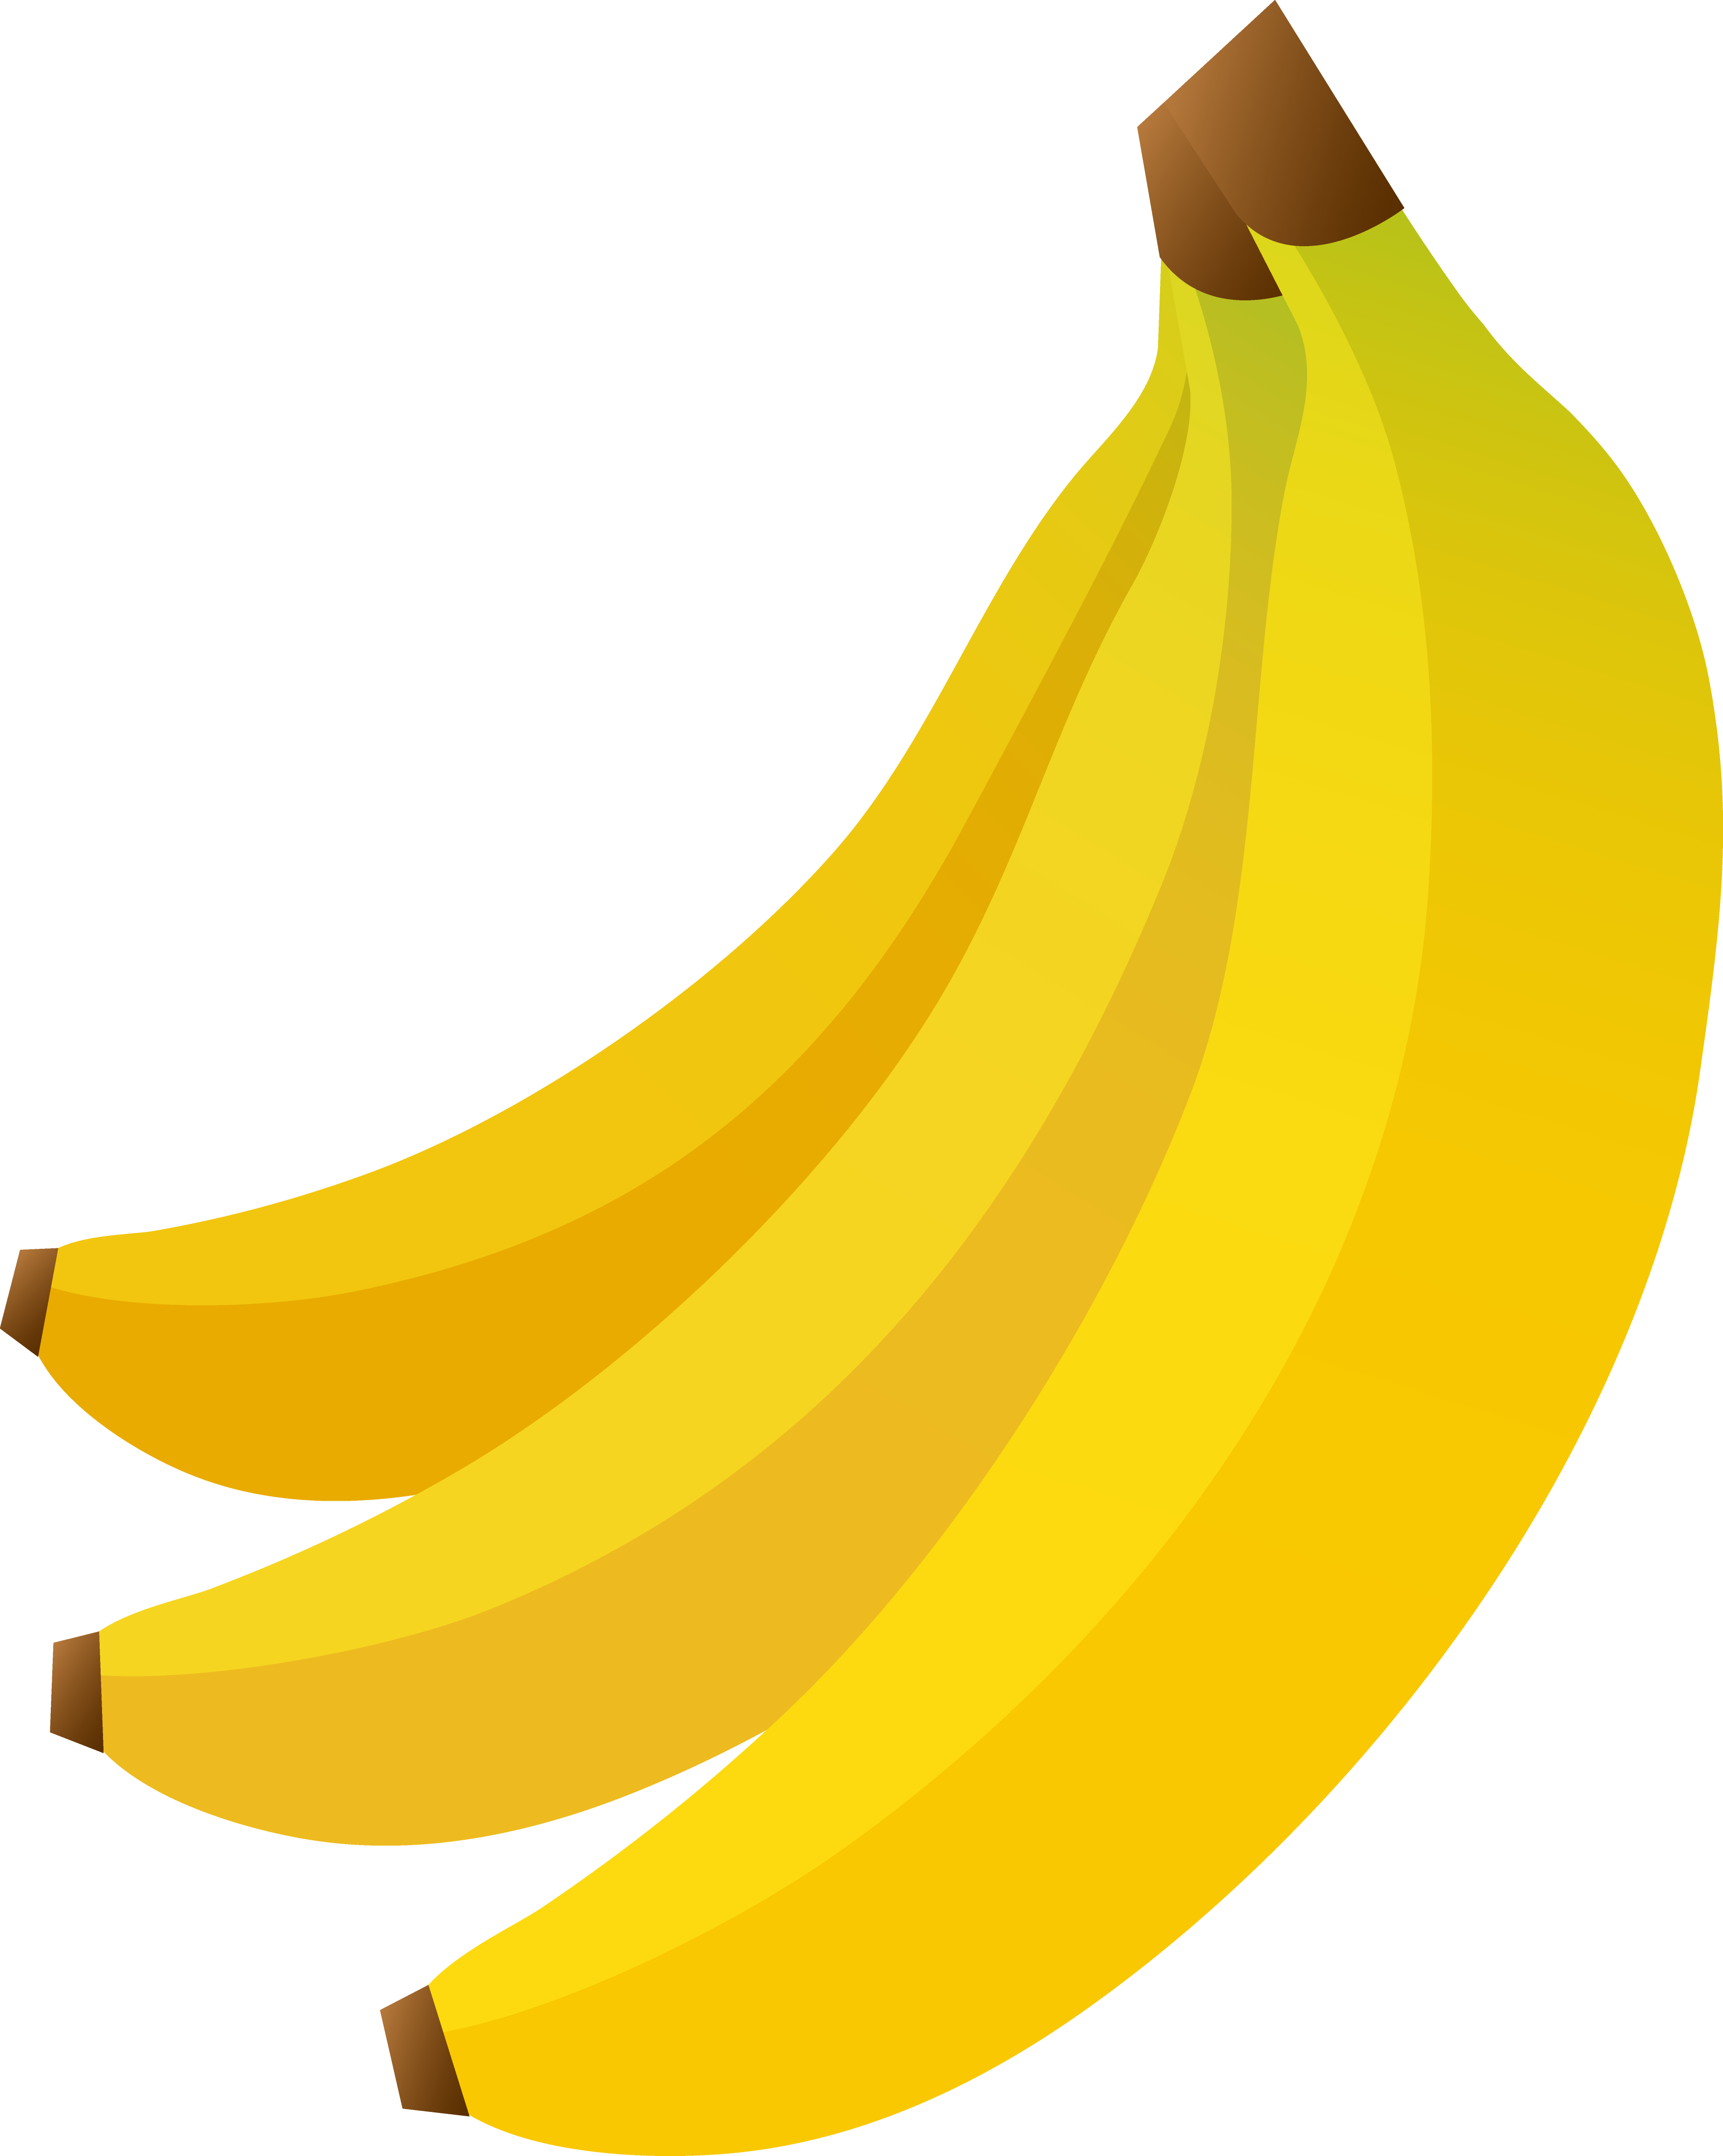 Download Banana Free Png Transparent Image And Clipart